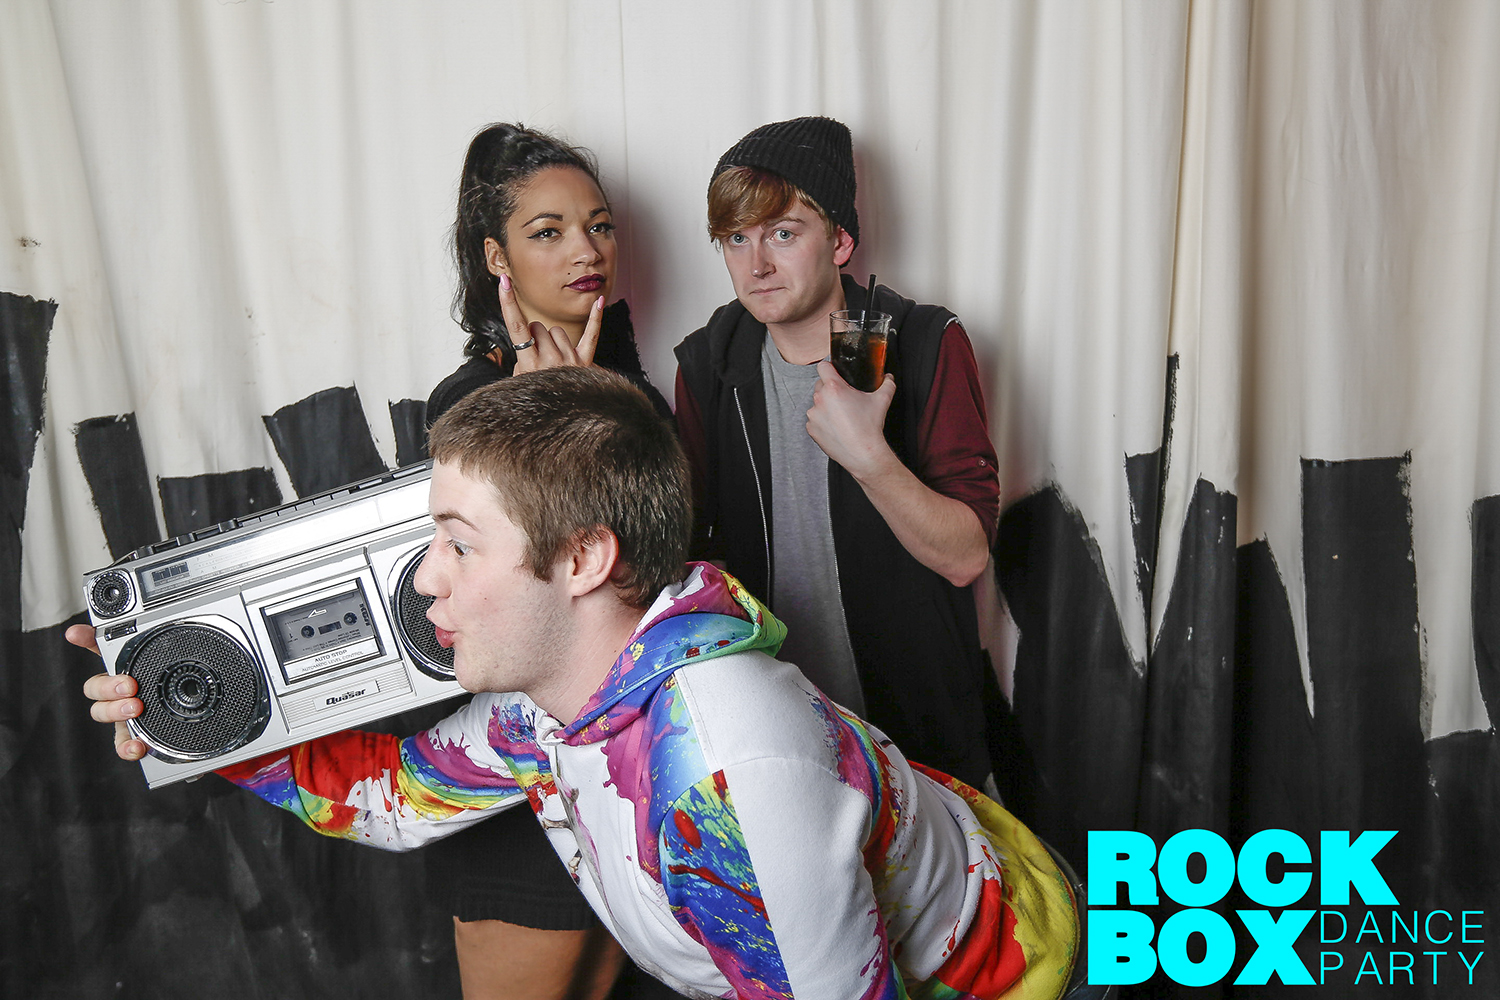 Rock box feb 2015-0098.jpg